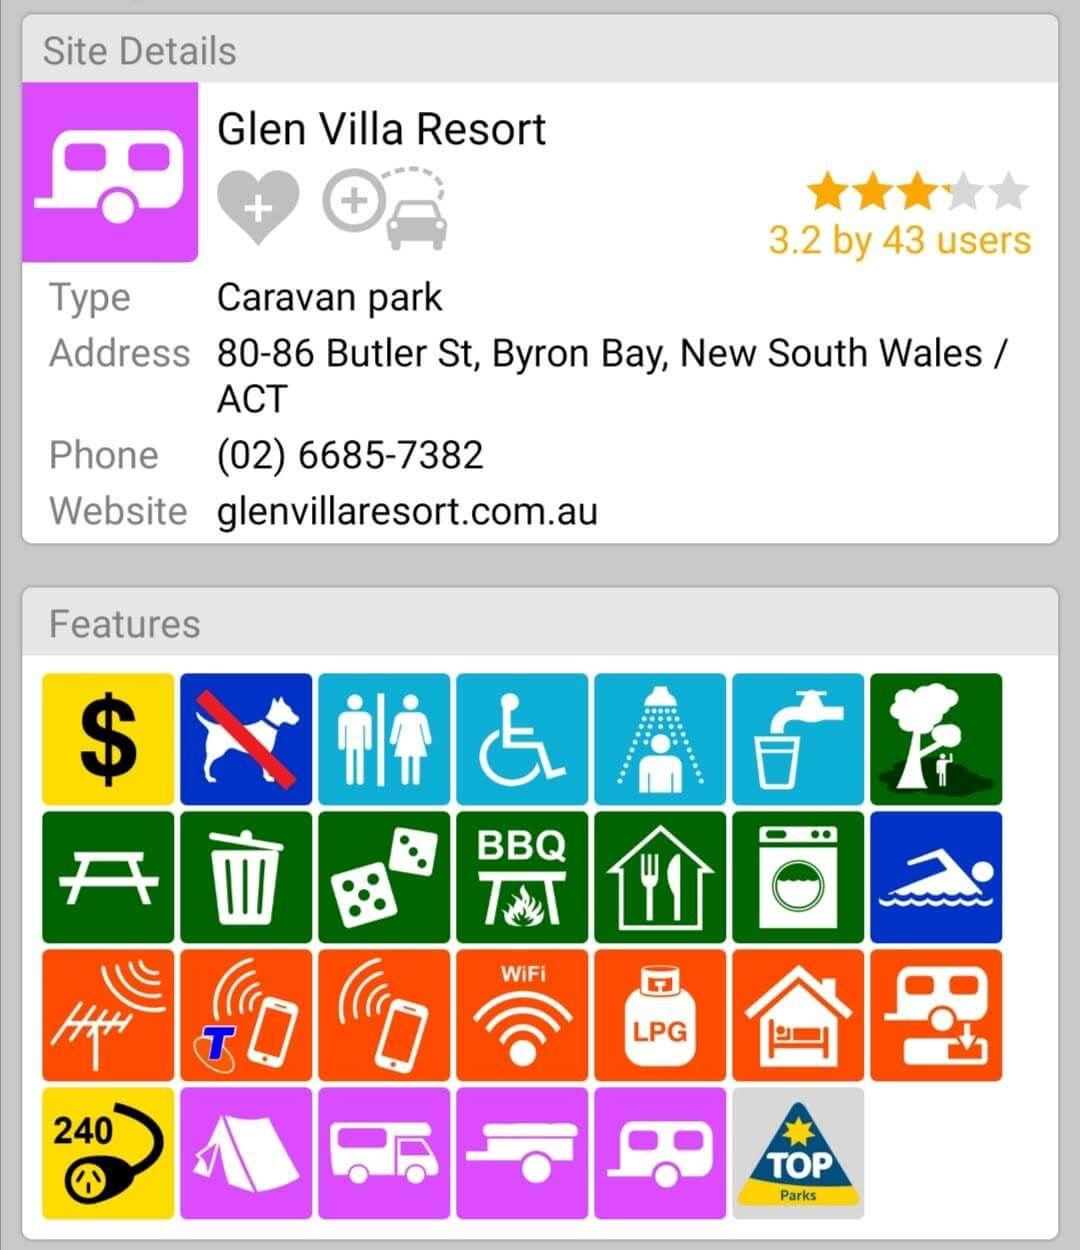 Glen Villa Resort